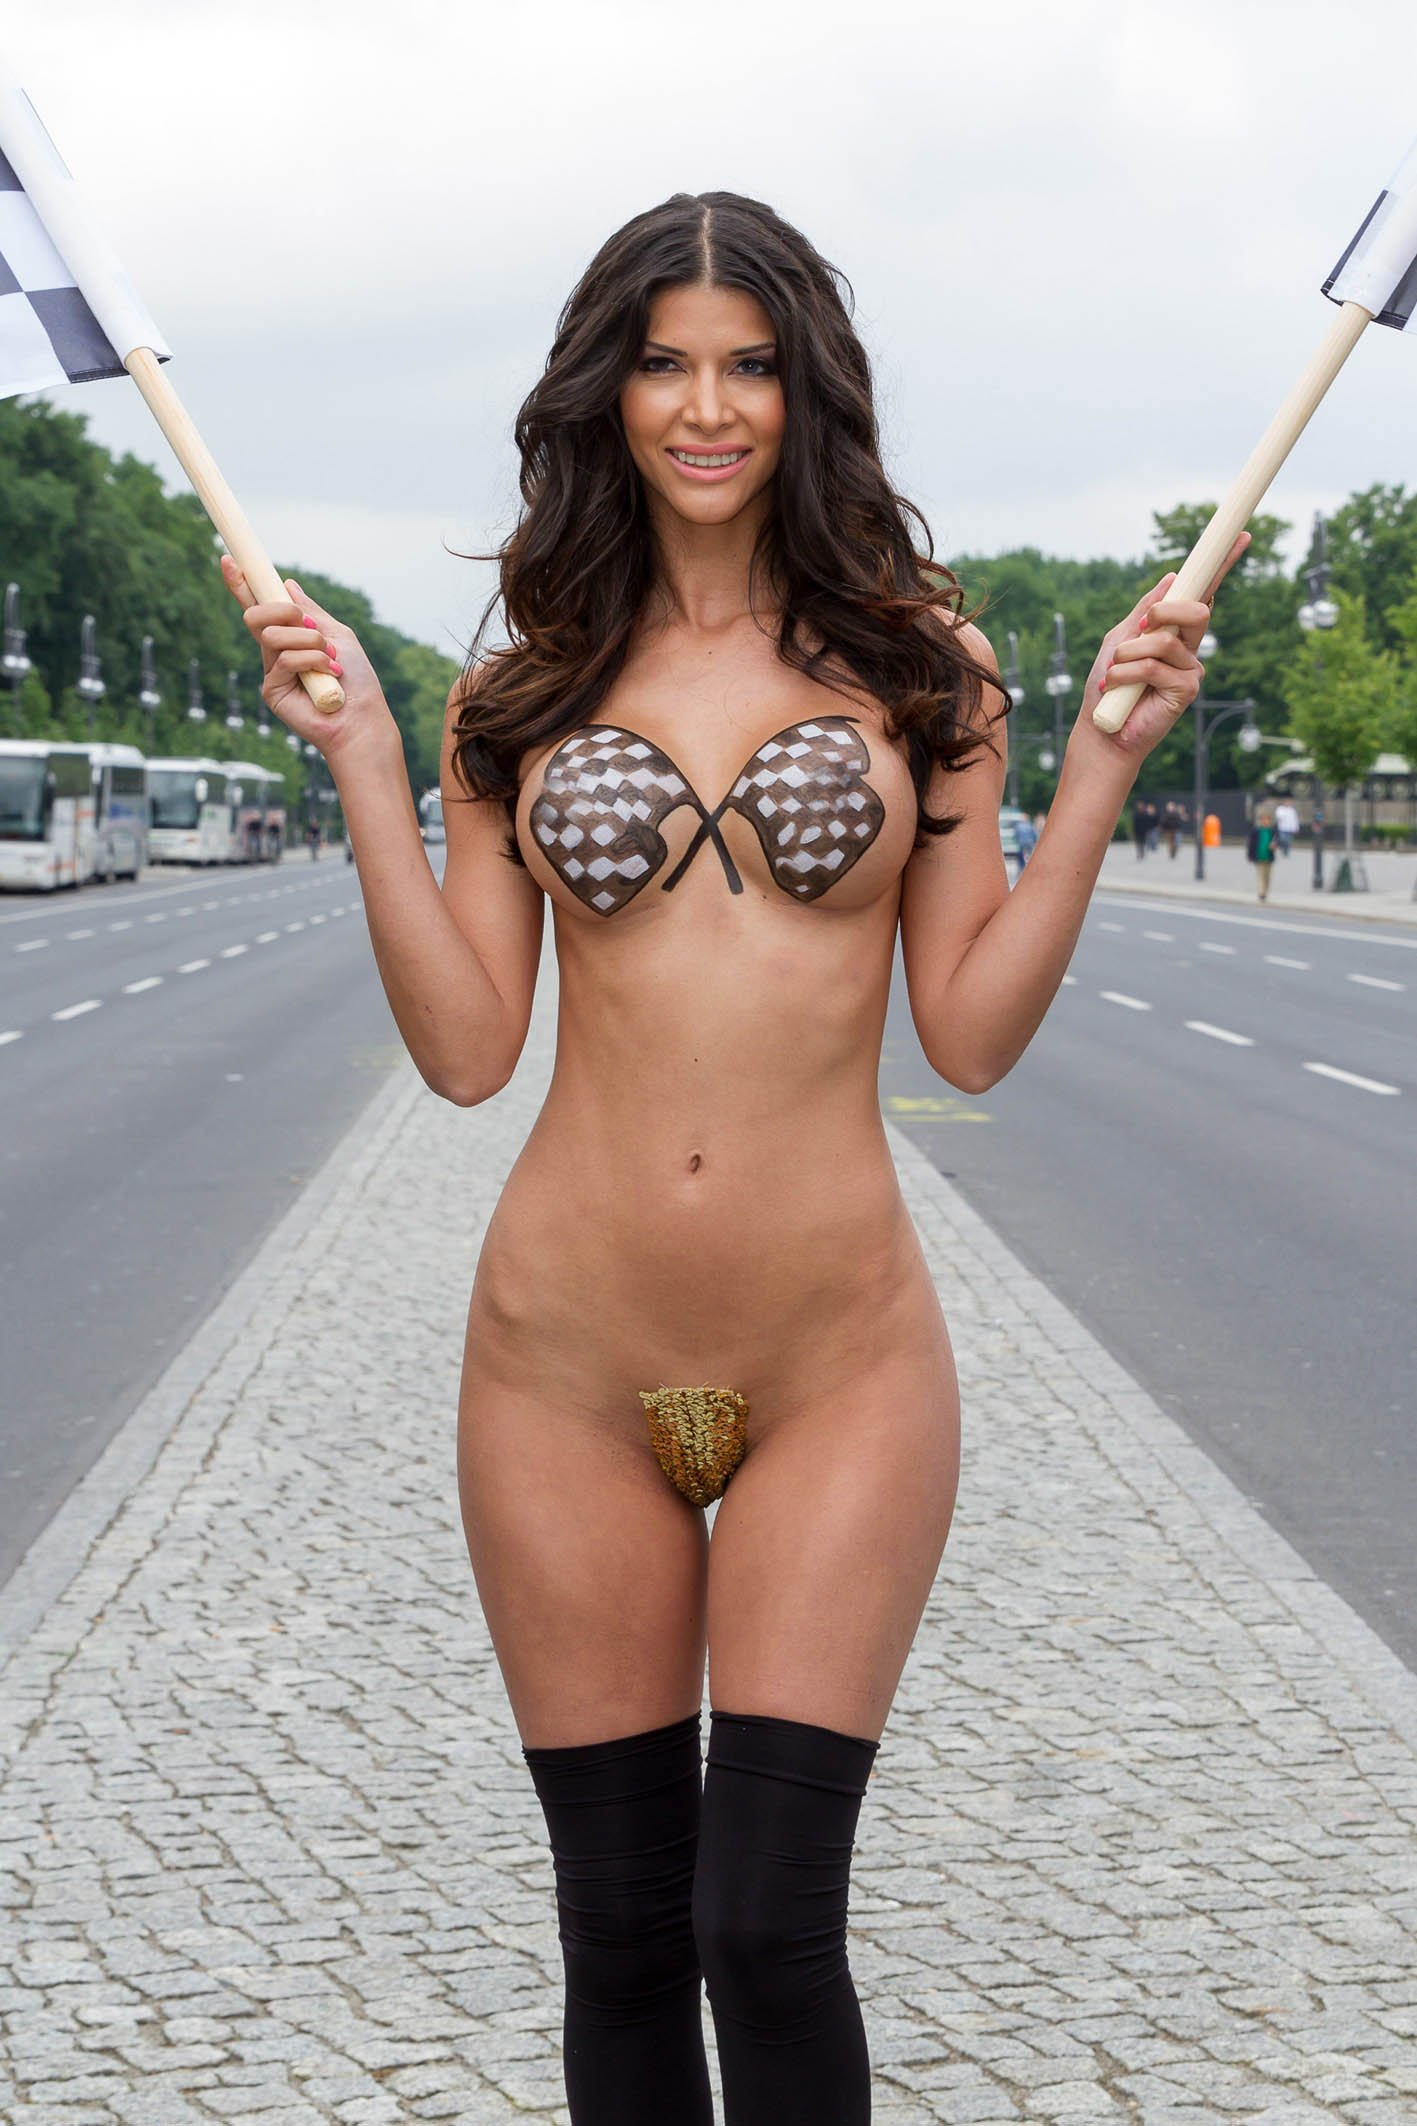 Hot german woman naked, busty nude gothic girls